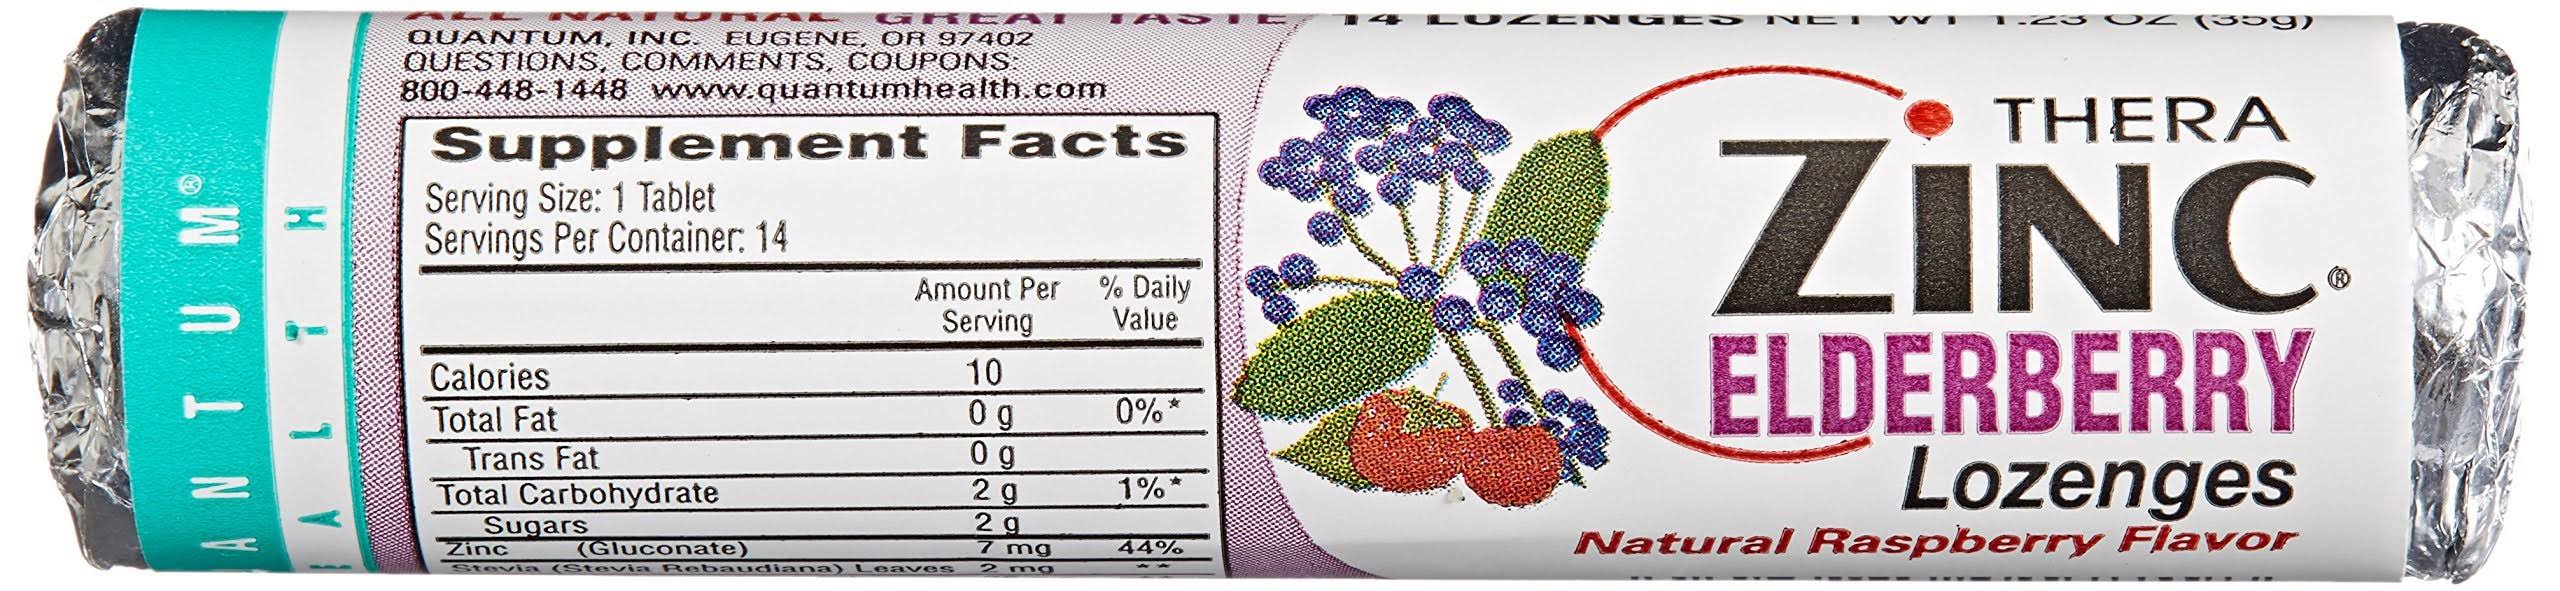 Quantum Health Zinc Elderberry Lozenges - Raspberry, 14ct, 12pk